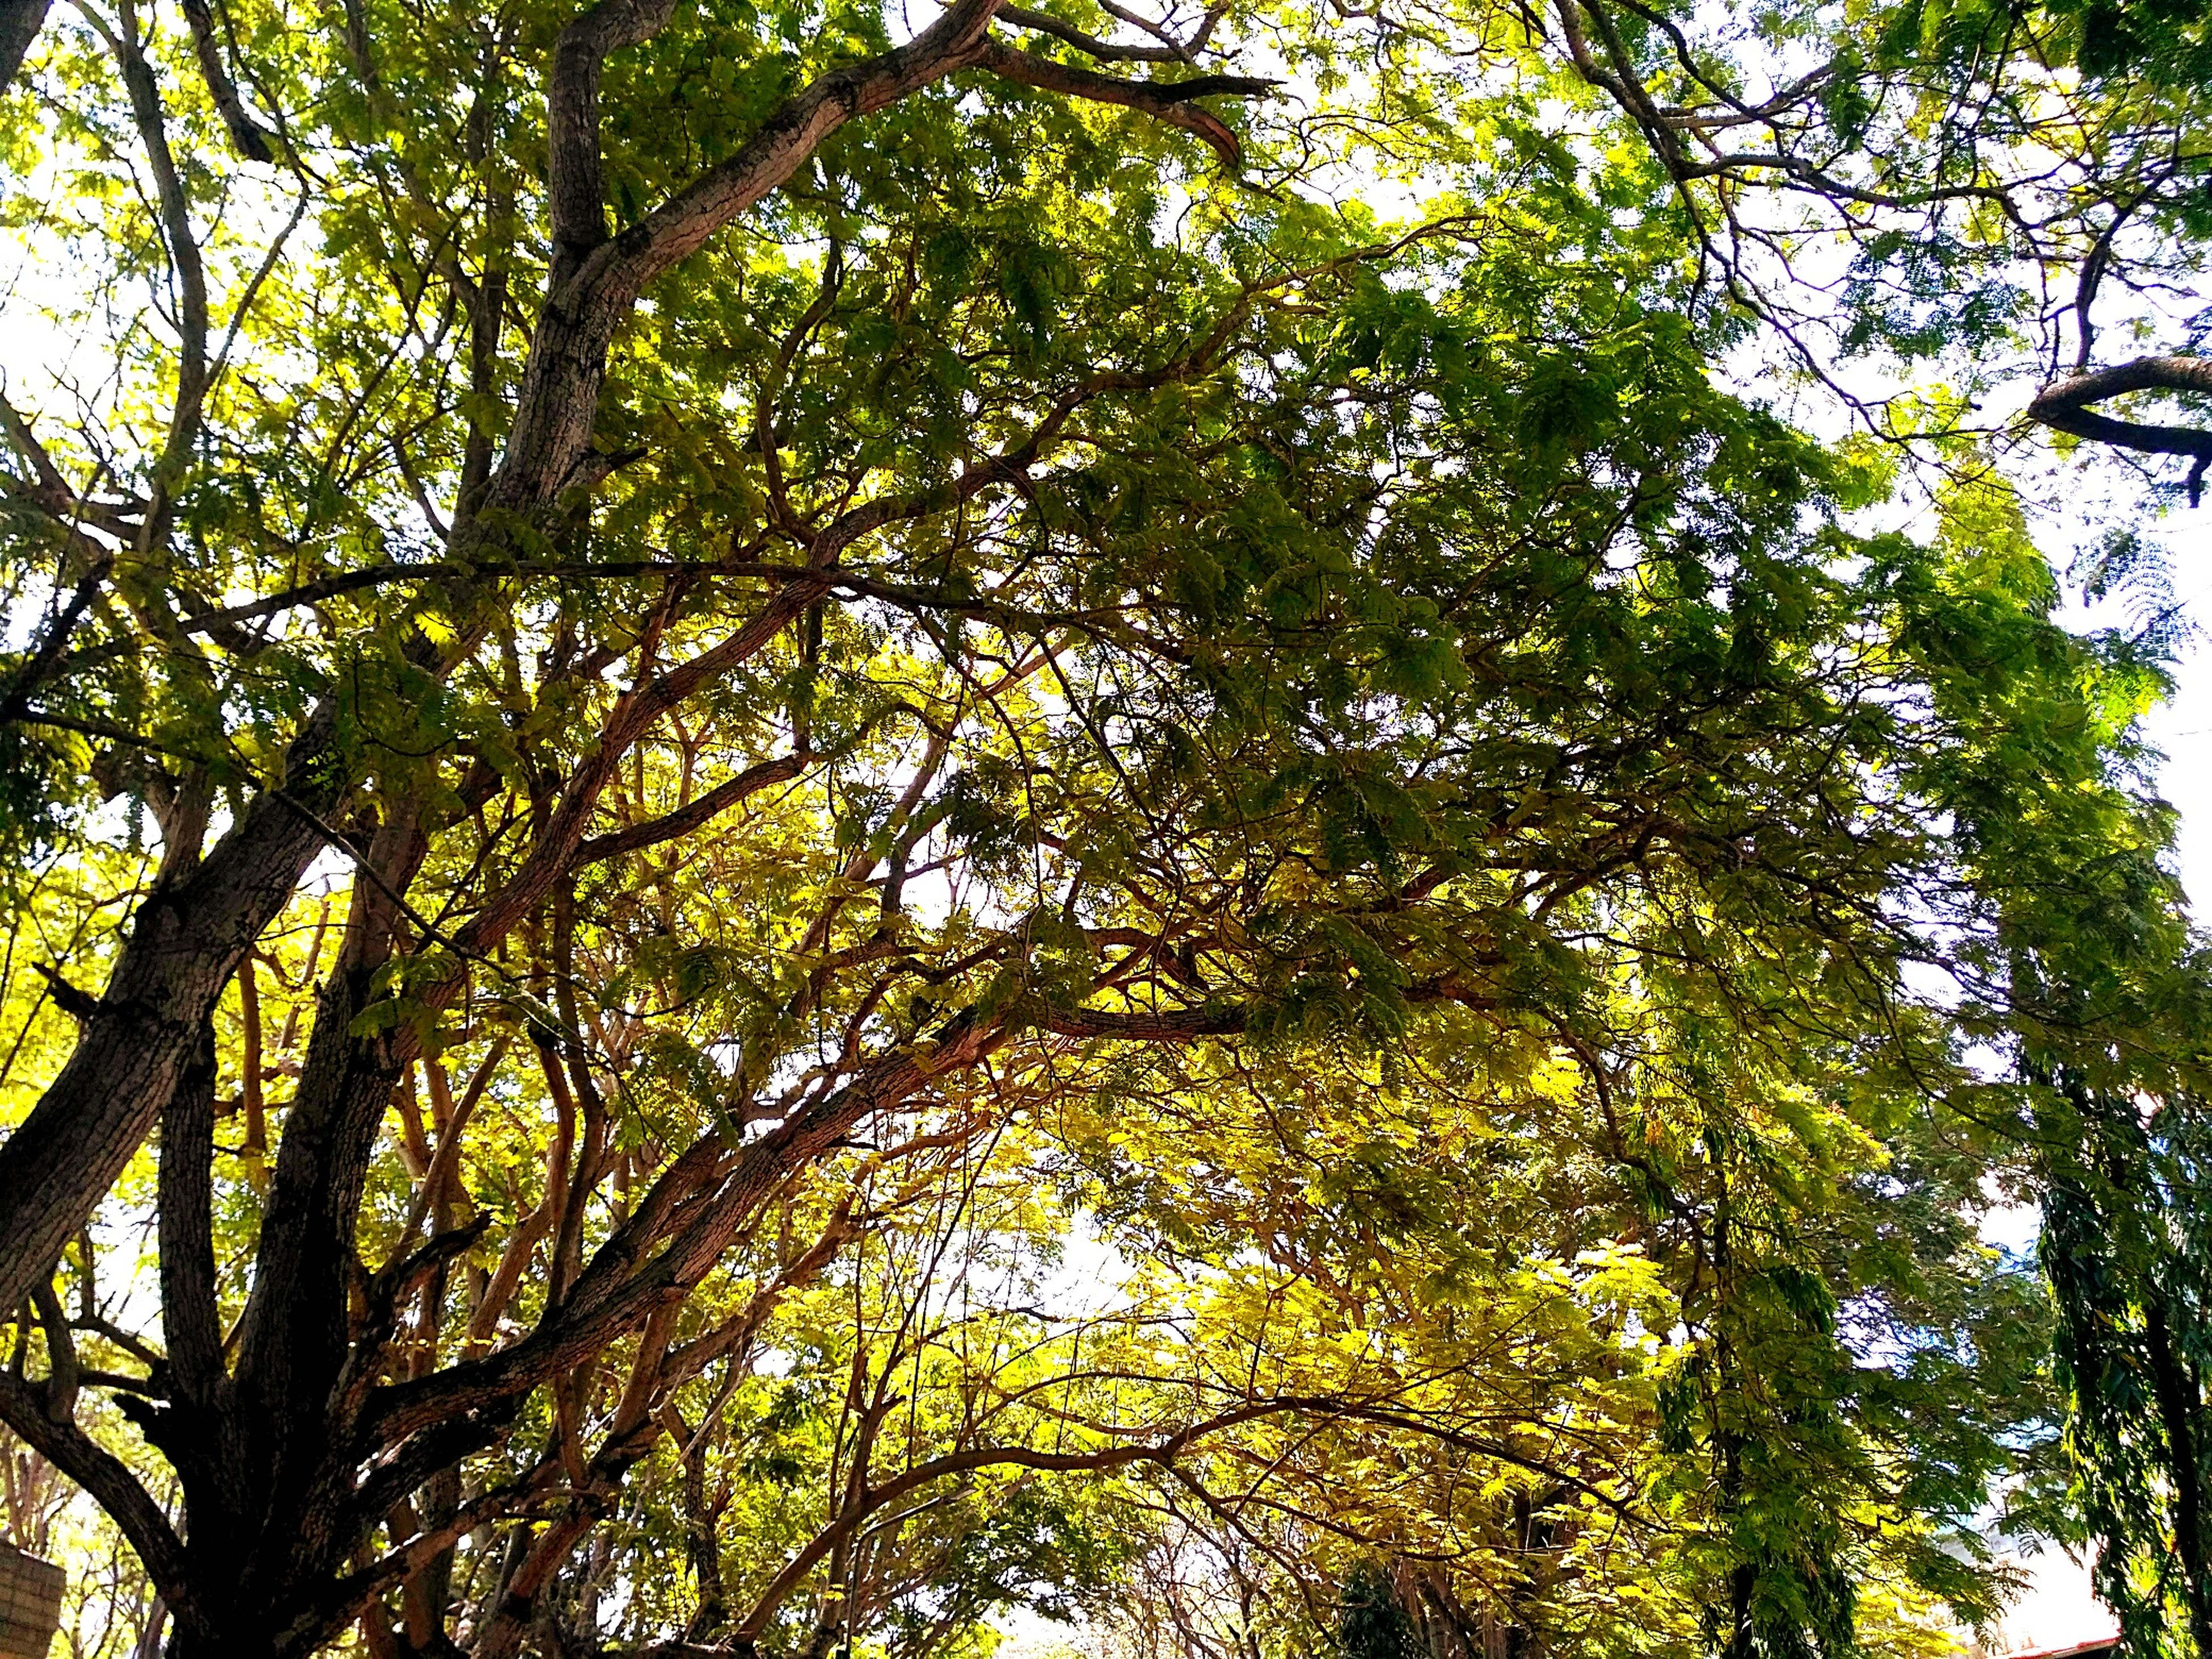 tree, low angle view, growth, nature, branch, beauty in nature, forest, day, no people, green color, outdoors, tree canopy, tranquility, tree trunk, leaf, scenics, freshness, sky